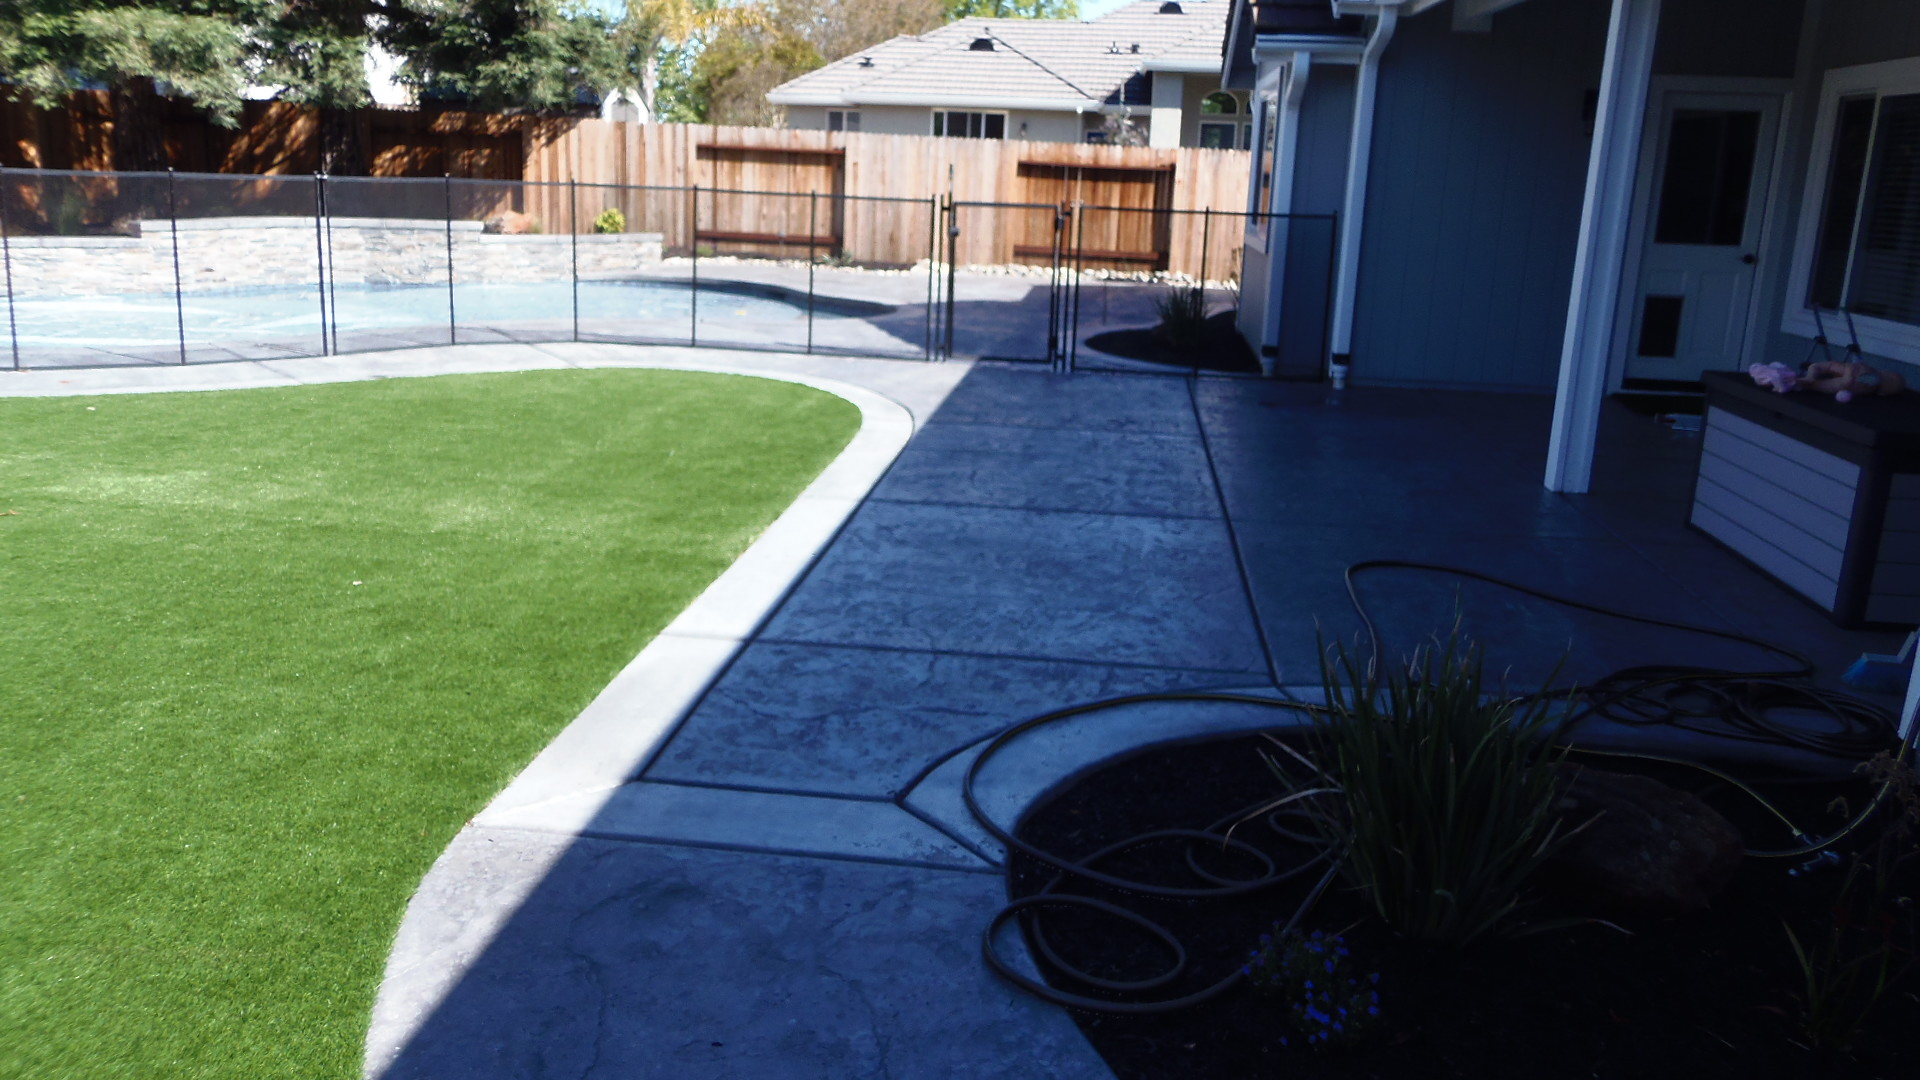 Backyard View 2 - New Landscape Completed